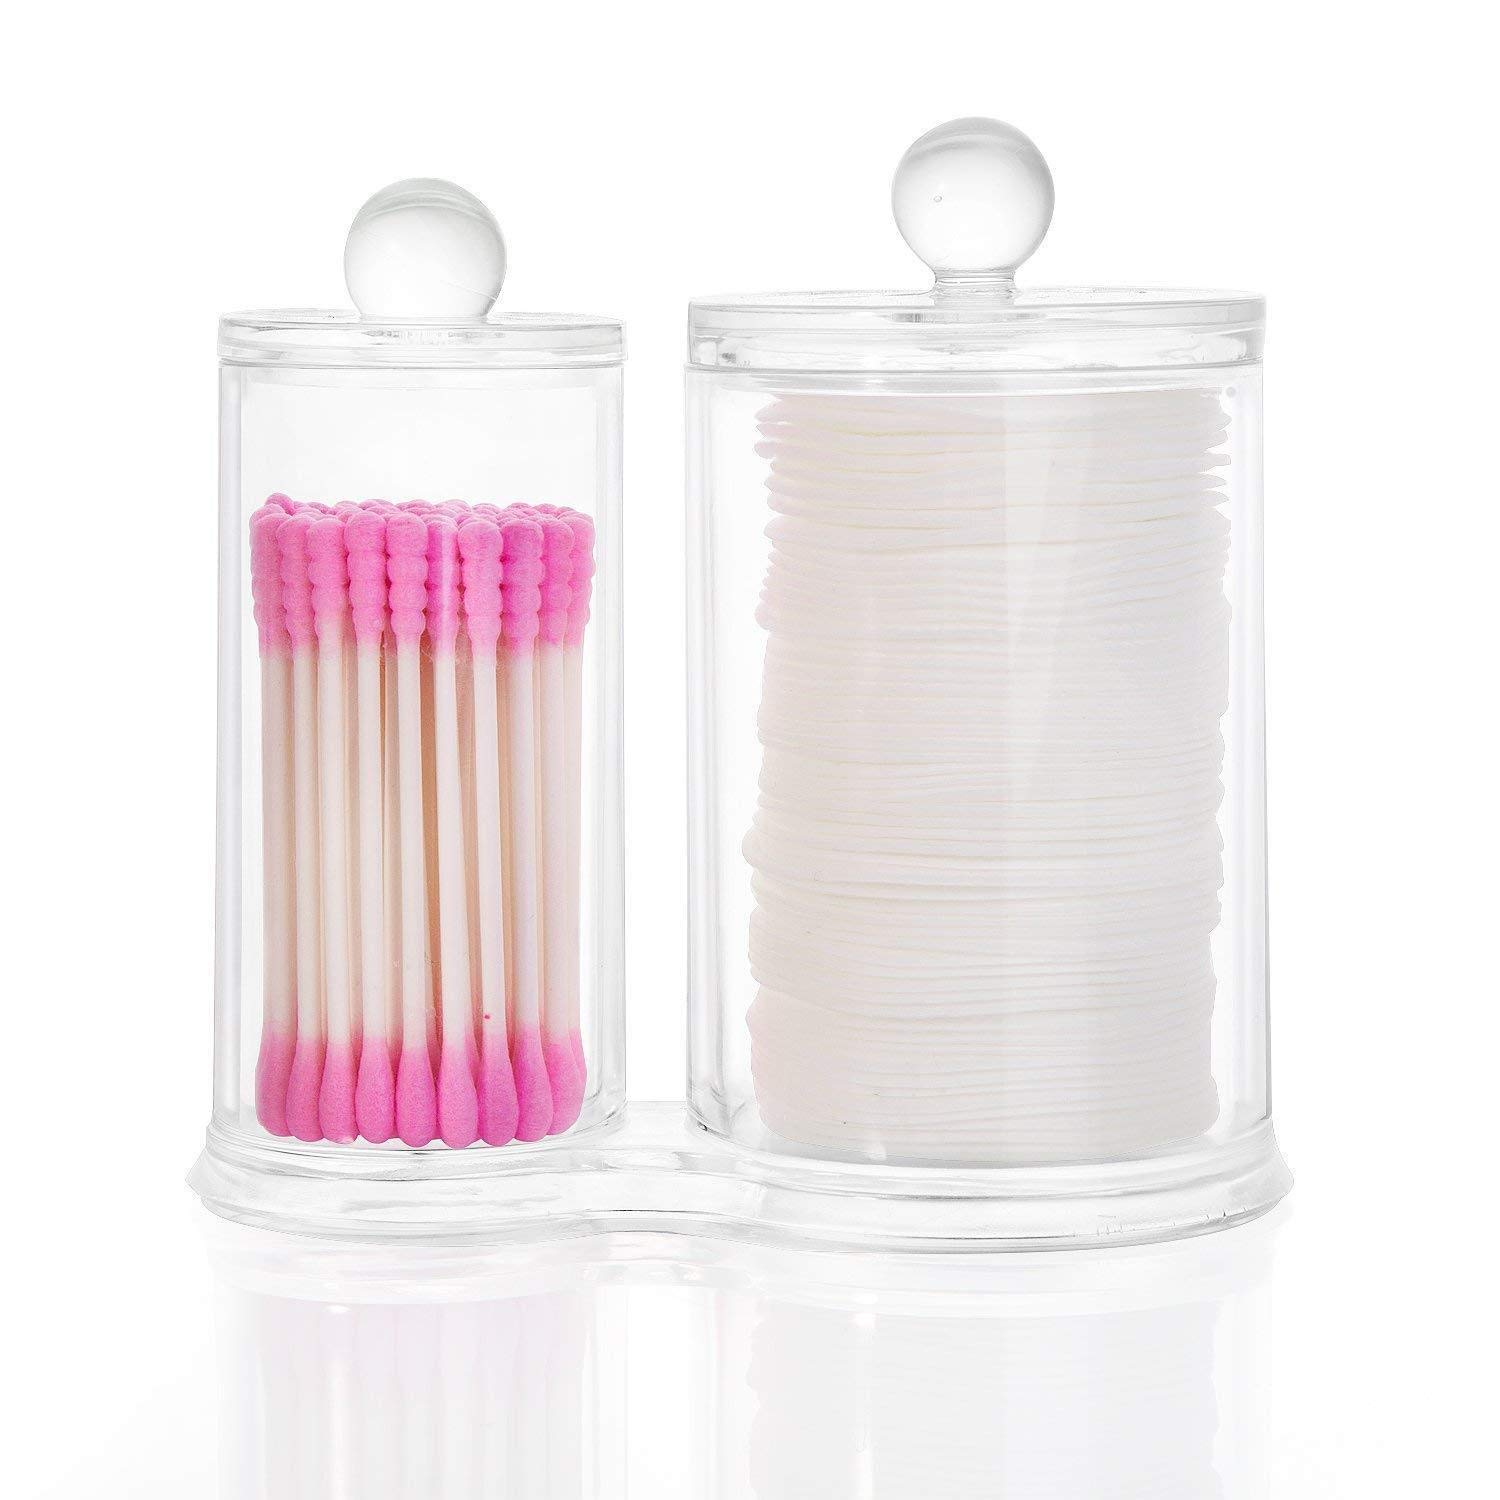 YEEGG Clear Plastic Cotton Ball and Swab Holder with Free Cotton Swabs for Vanity Counter-top